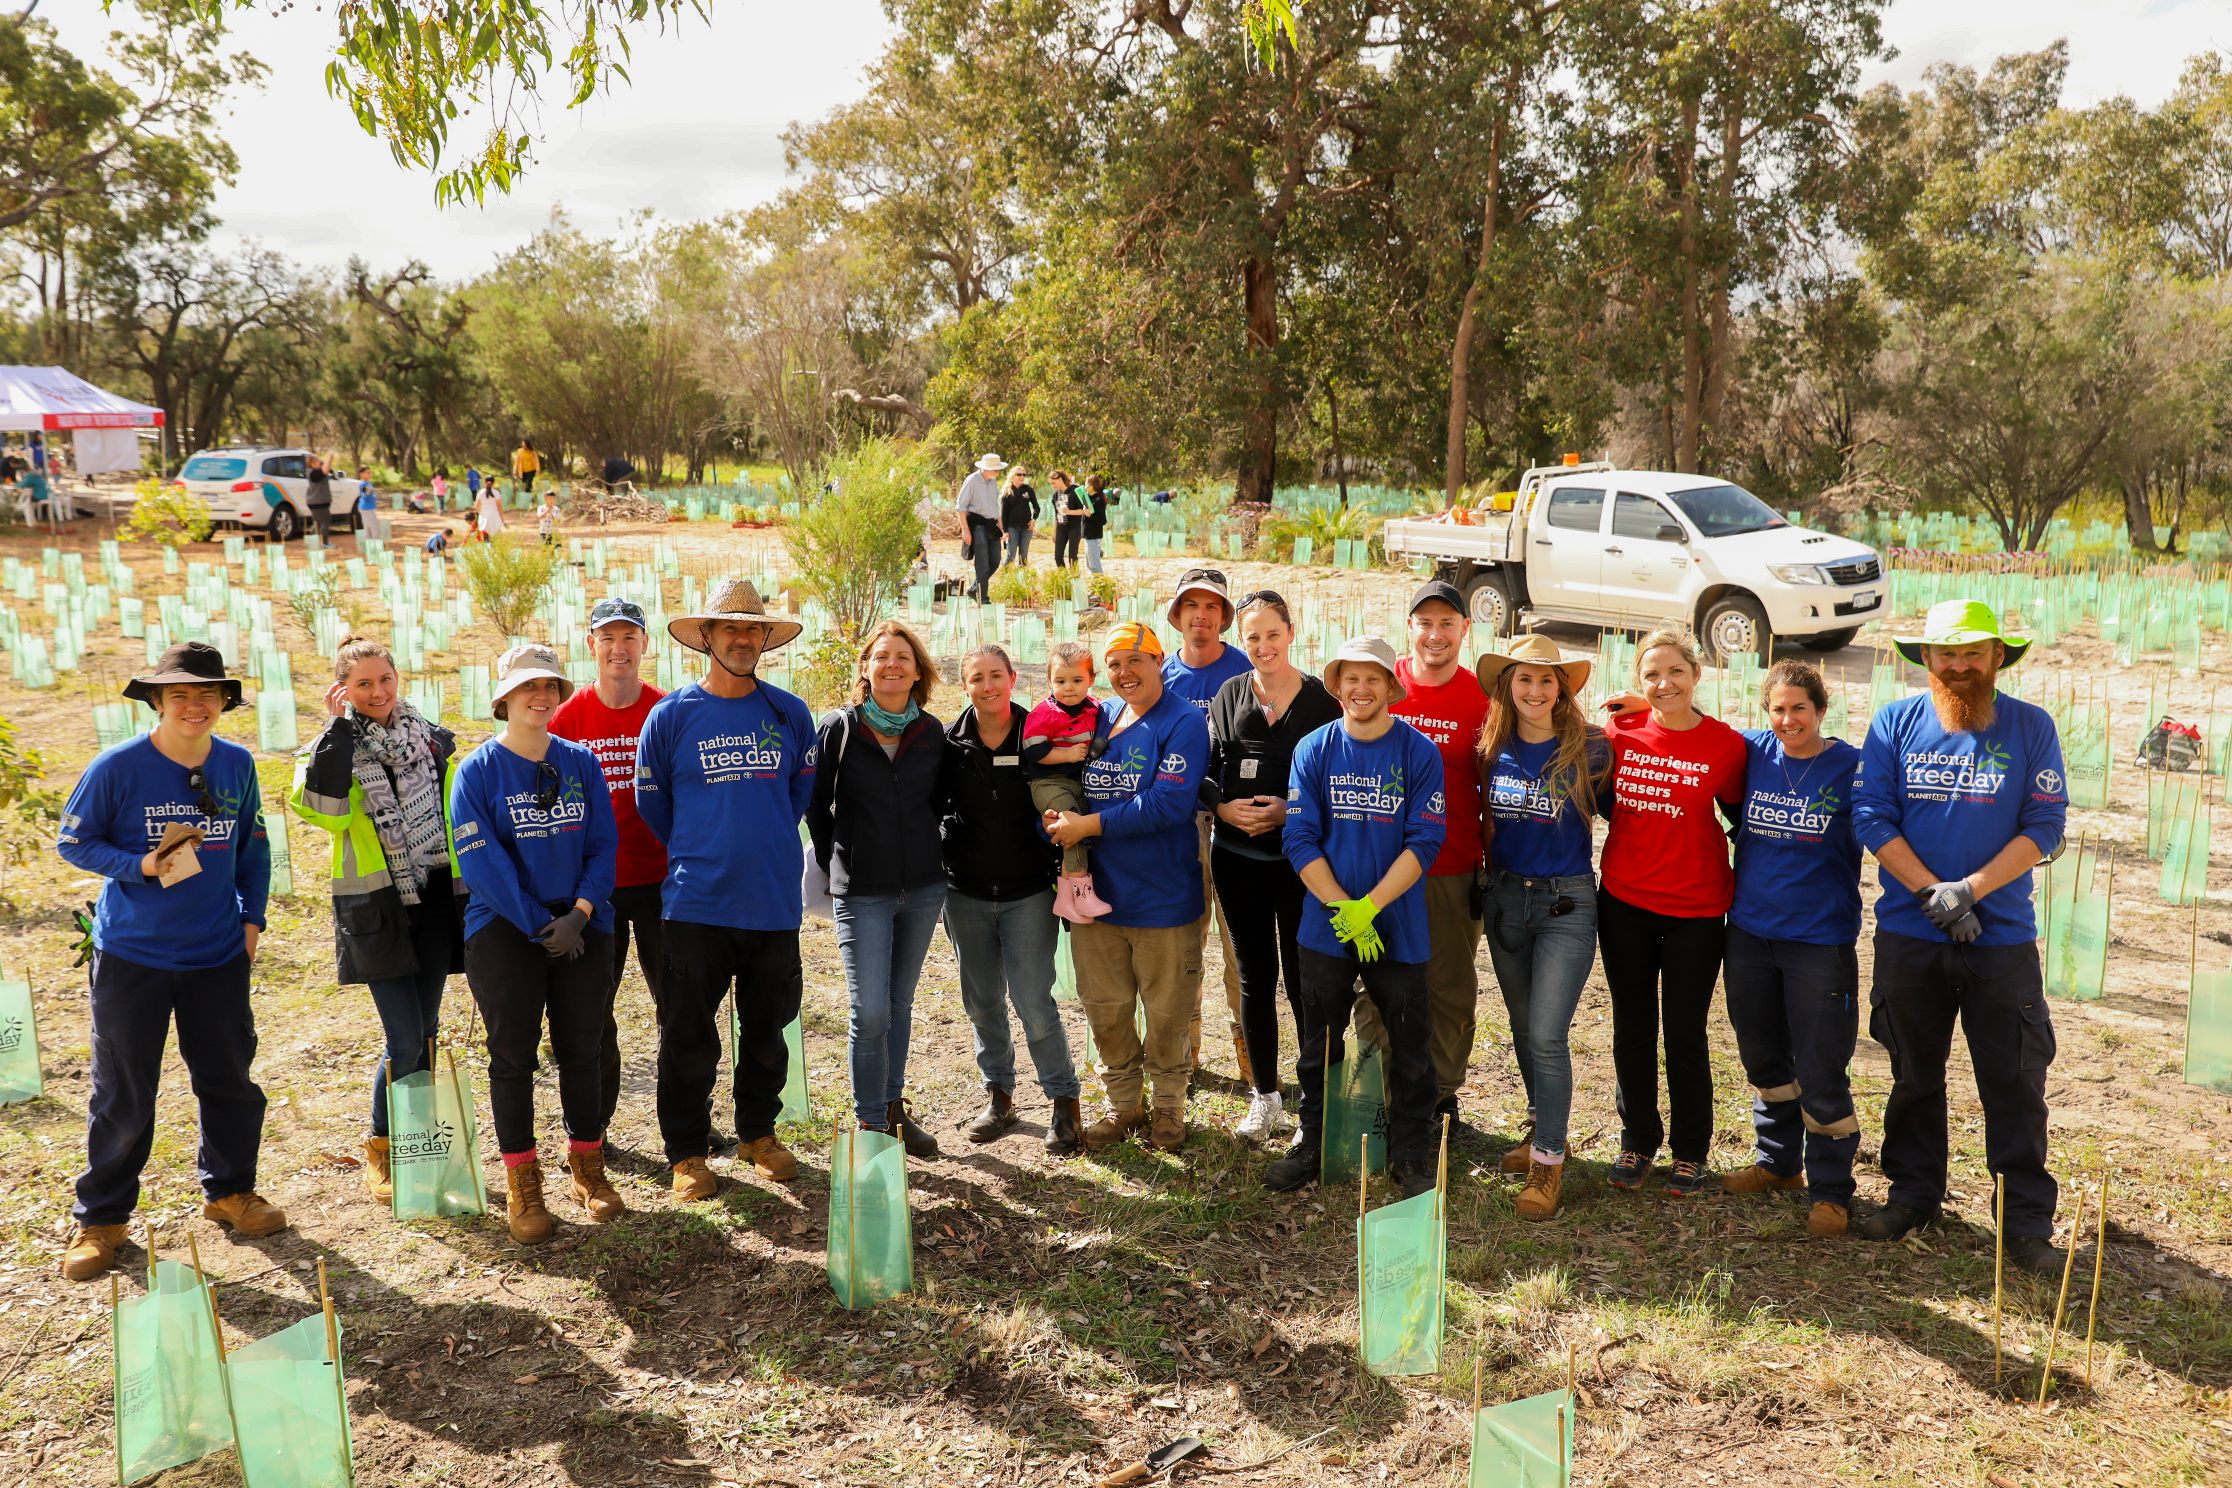 National Tree Day 2018 at Frasers Landing